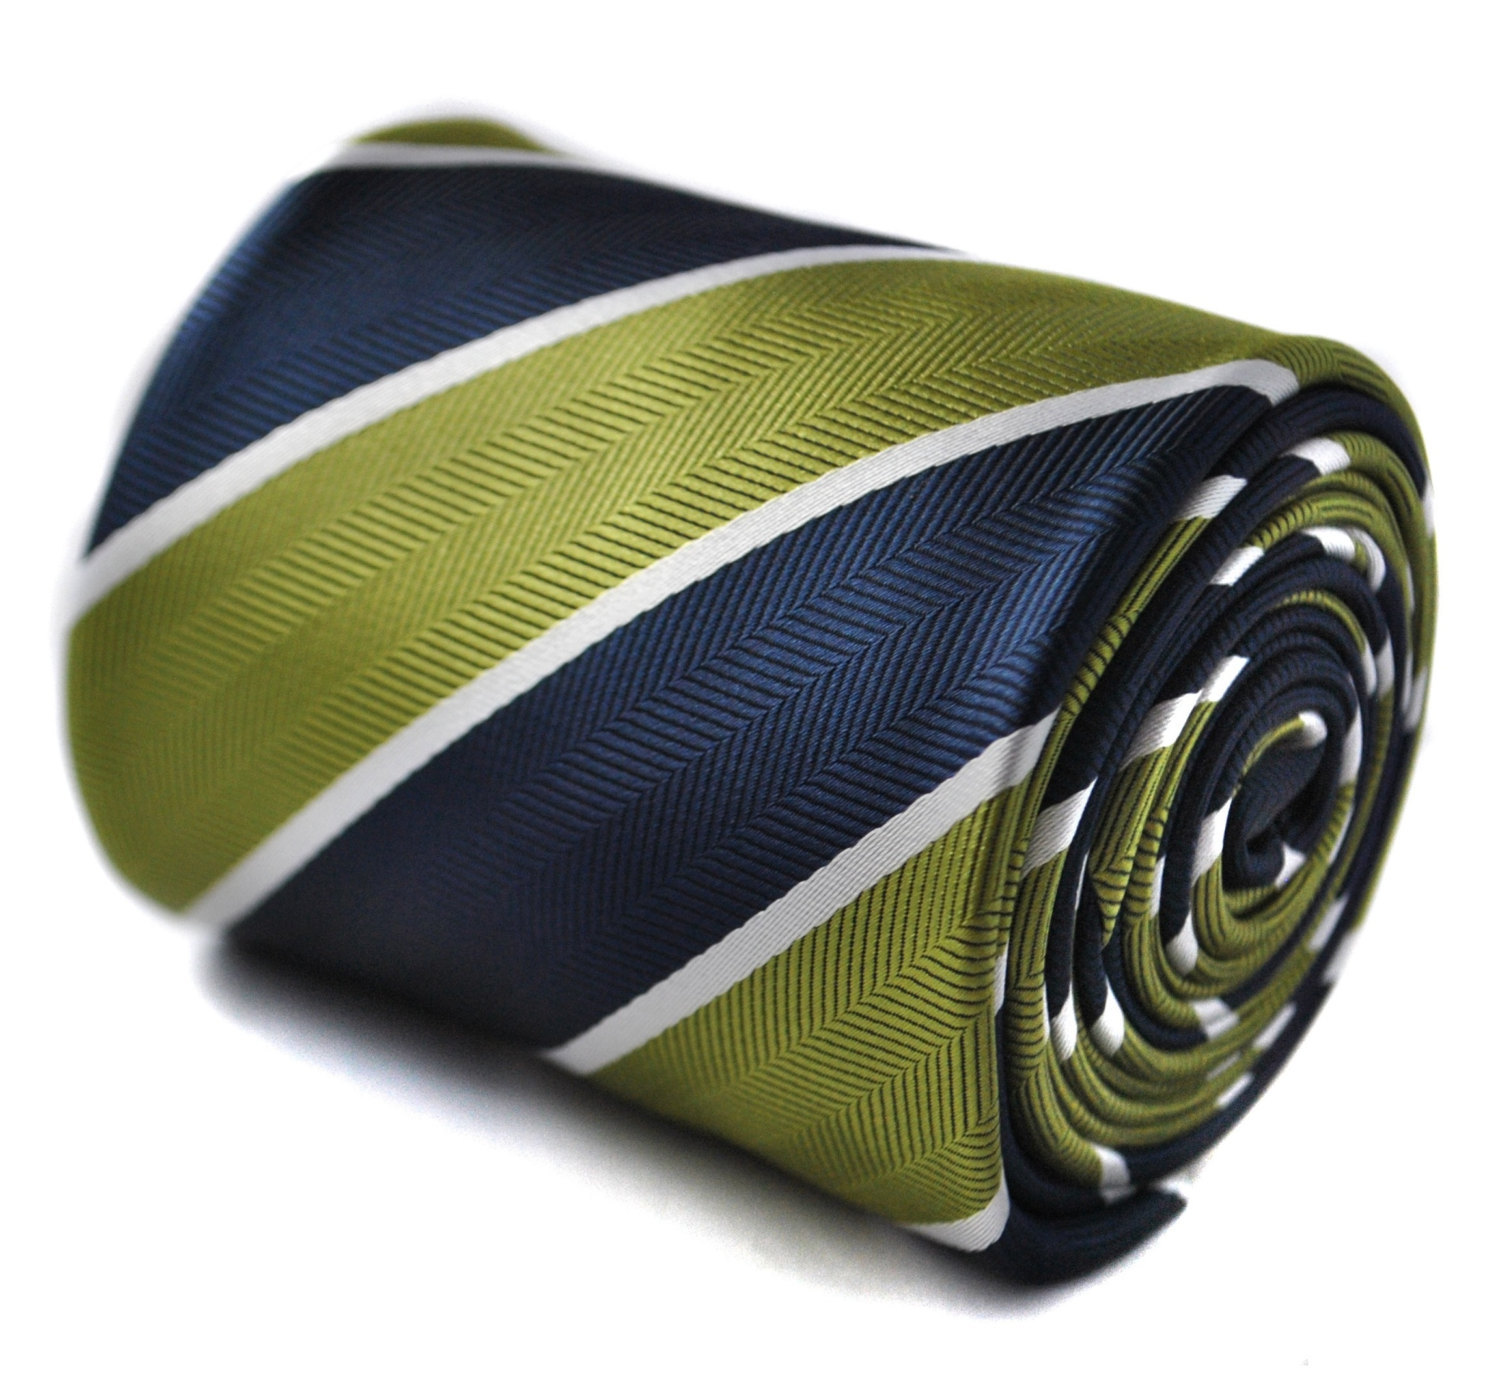 lime green, navy and white barber striped tie with floral design to the rear by